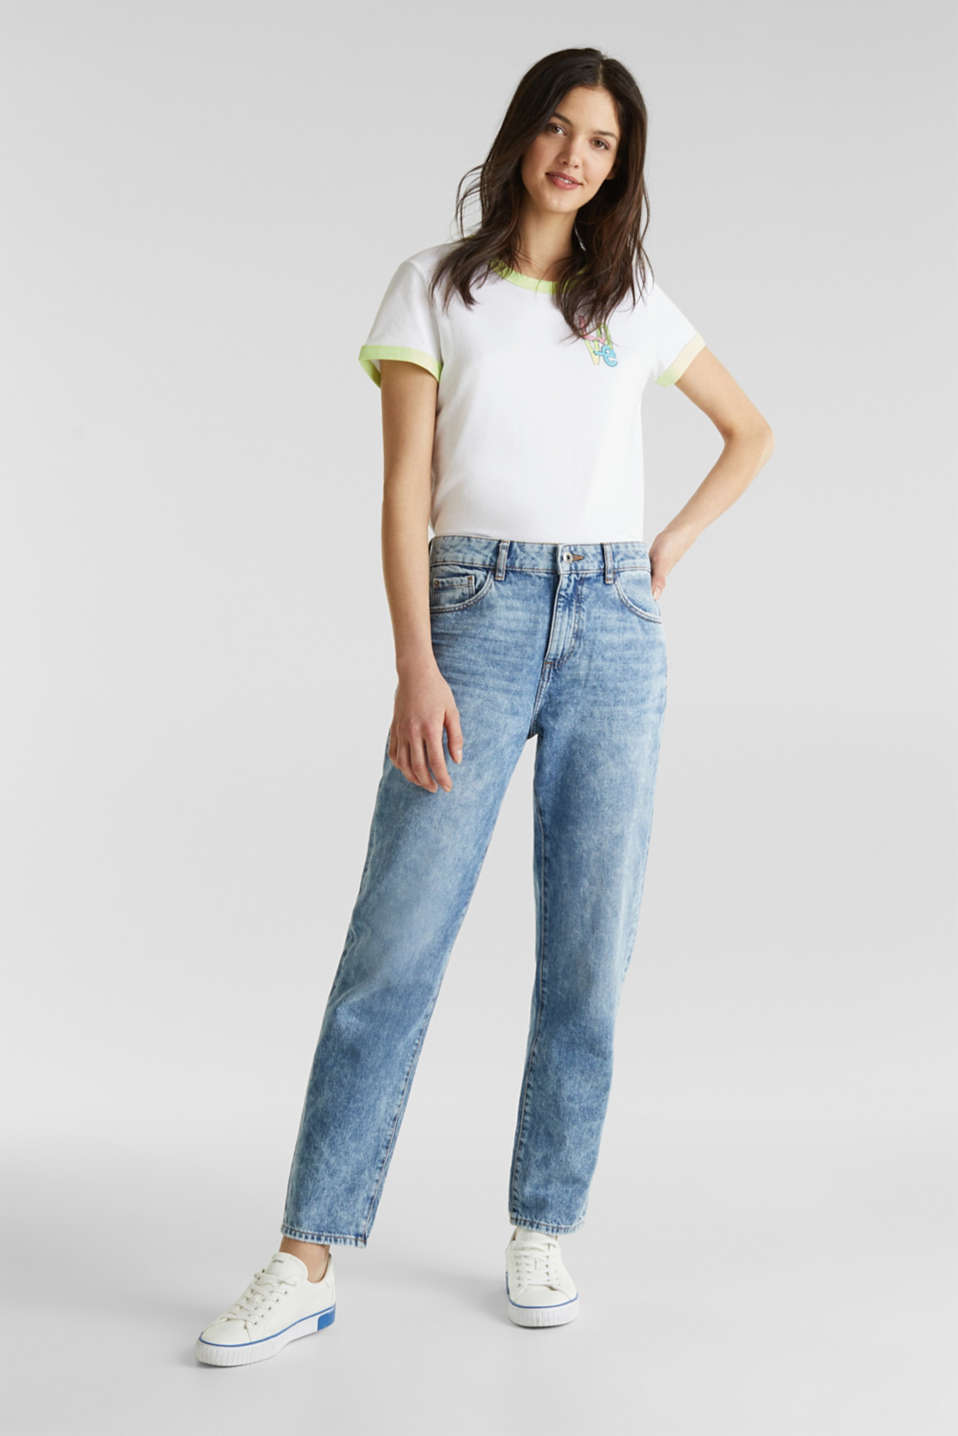 edc - Jean girlfriend longueur chevilles, 100 % coton